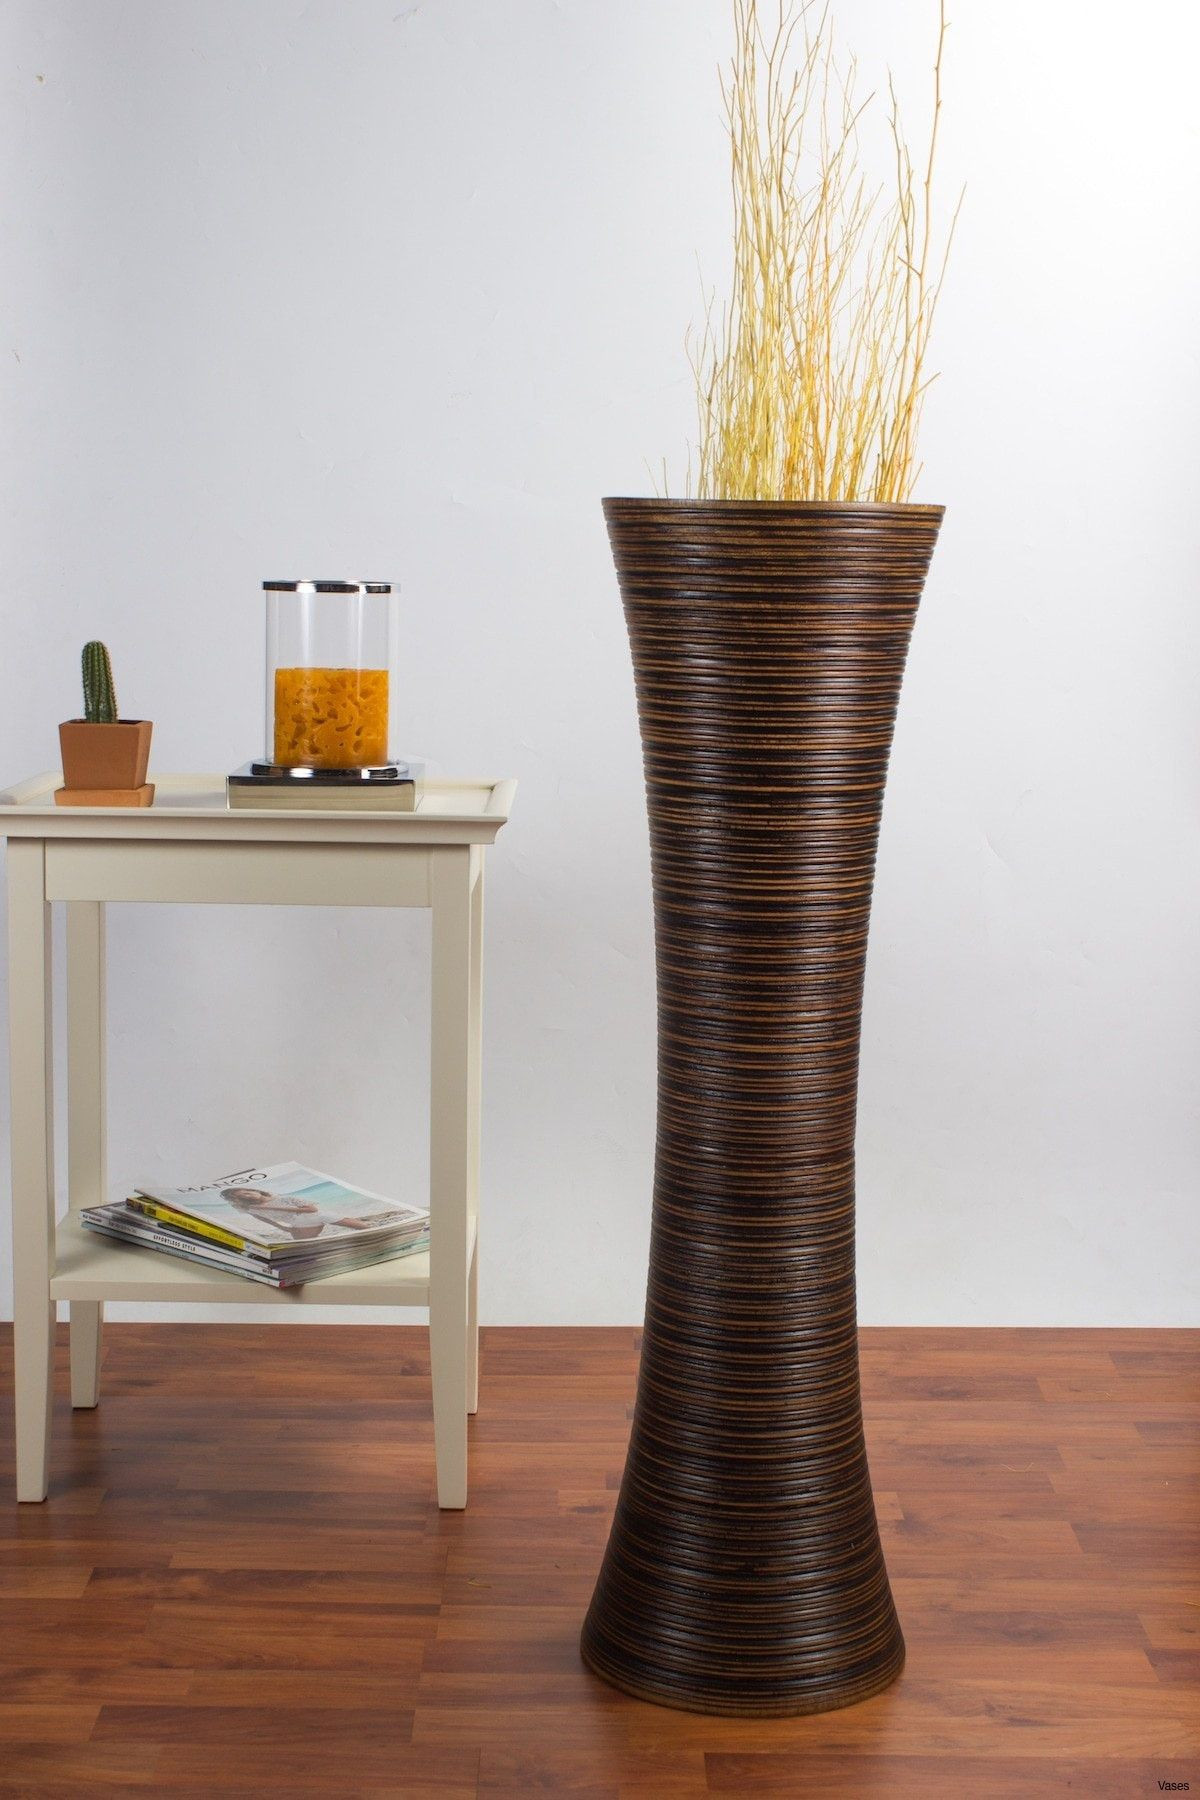 bamboo floor vases cheap of tall decorative vases luxury decorative floor vases fresh d dkbrw with tall decorative vases luxury decorative floor vases fresh d dkbrw 5749 1h vases tall brown i